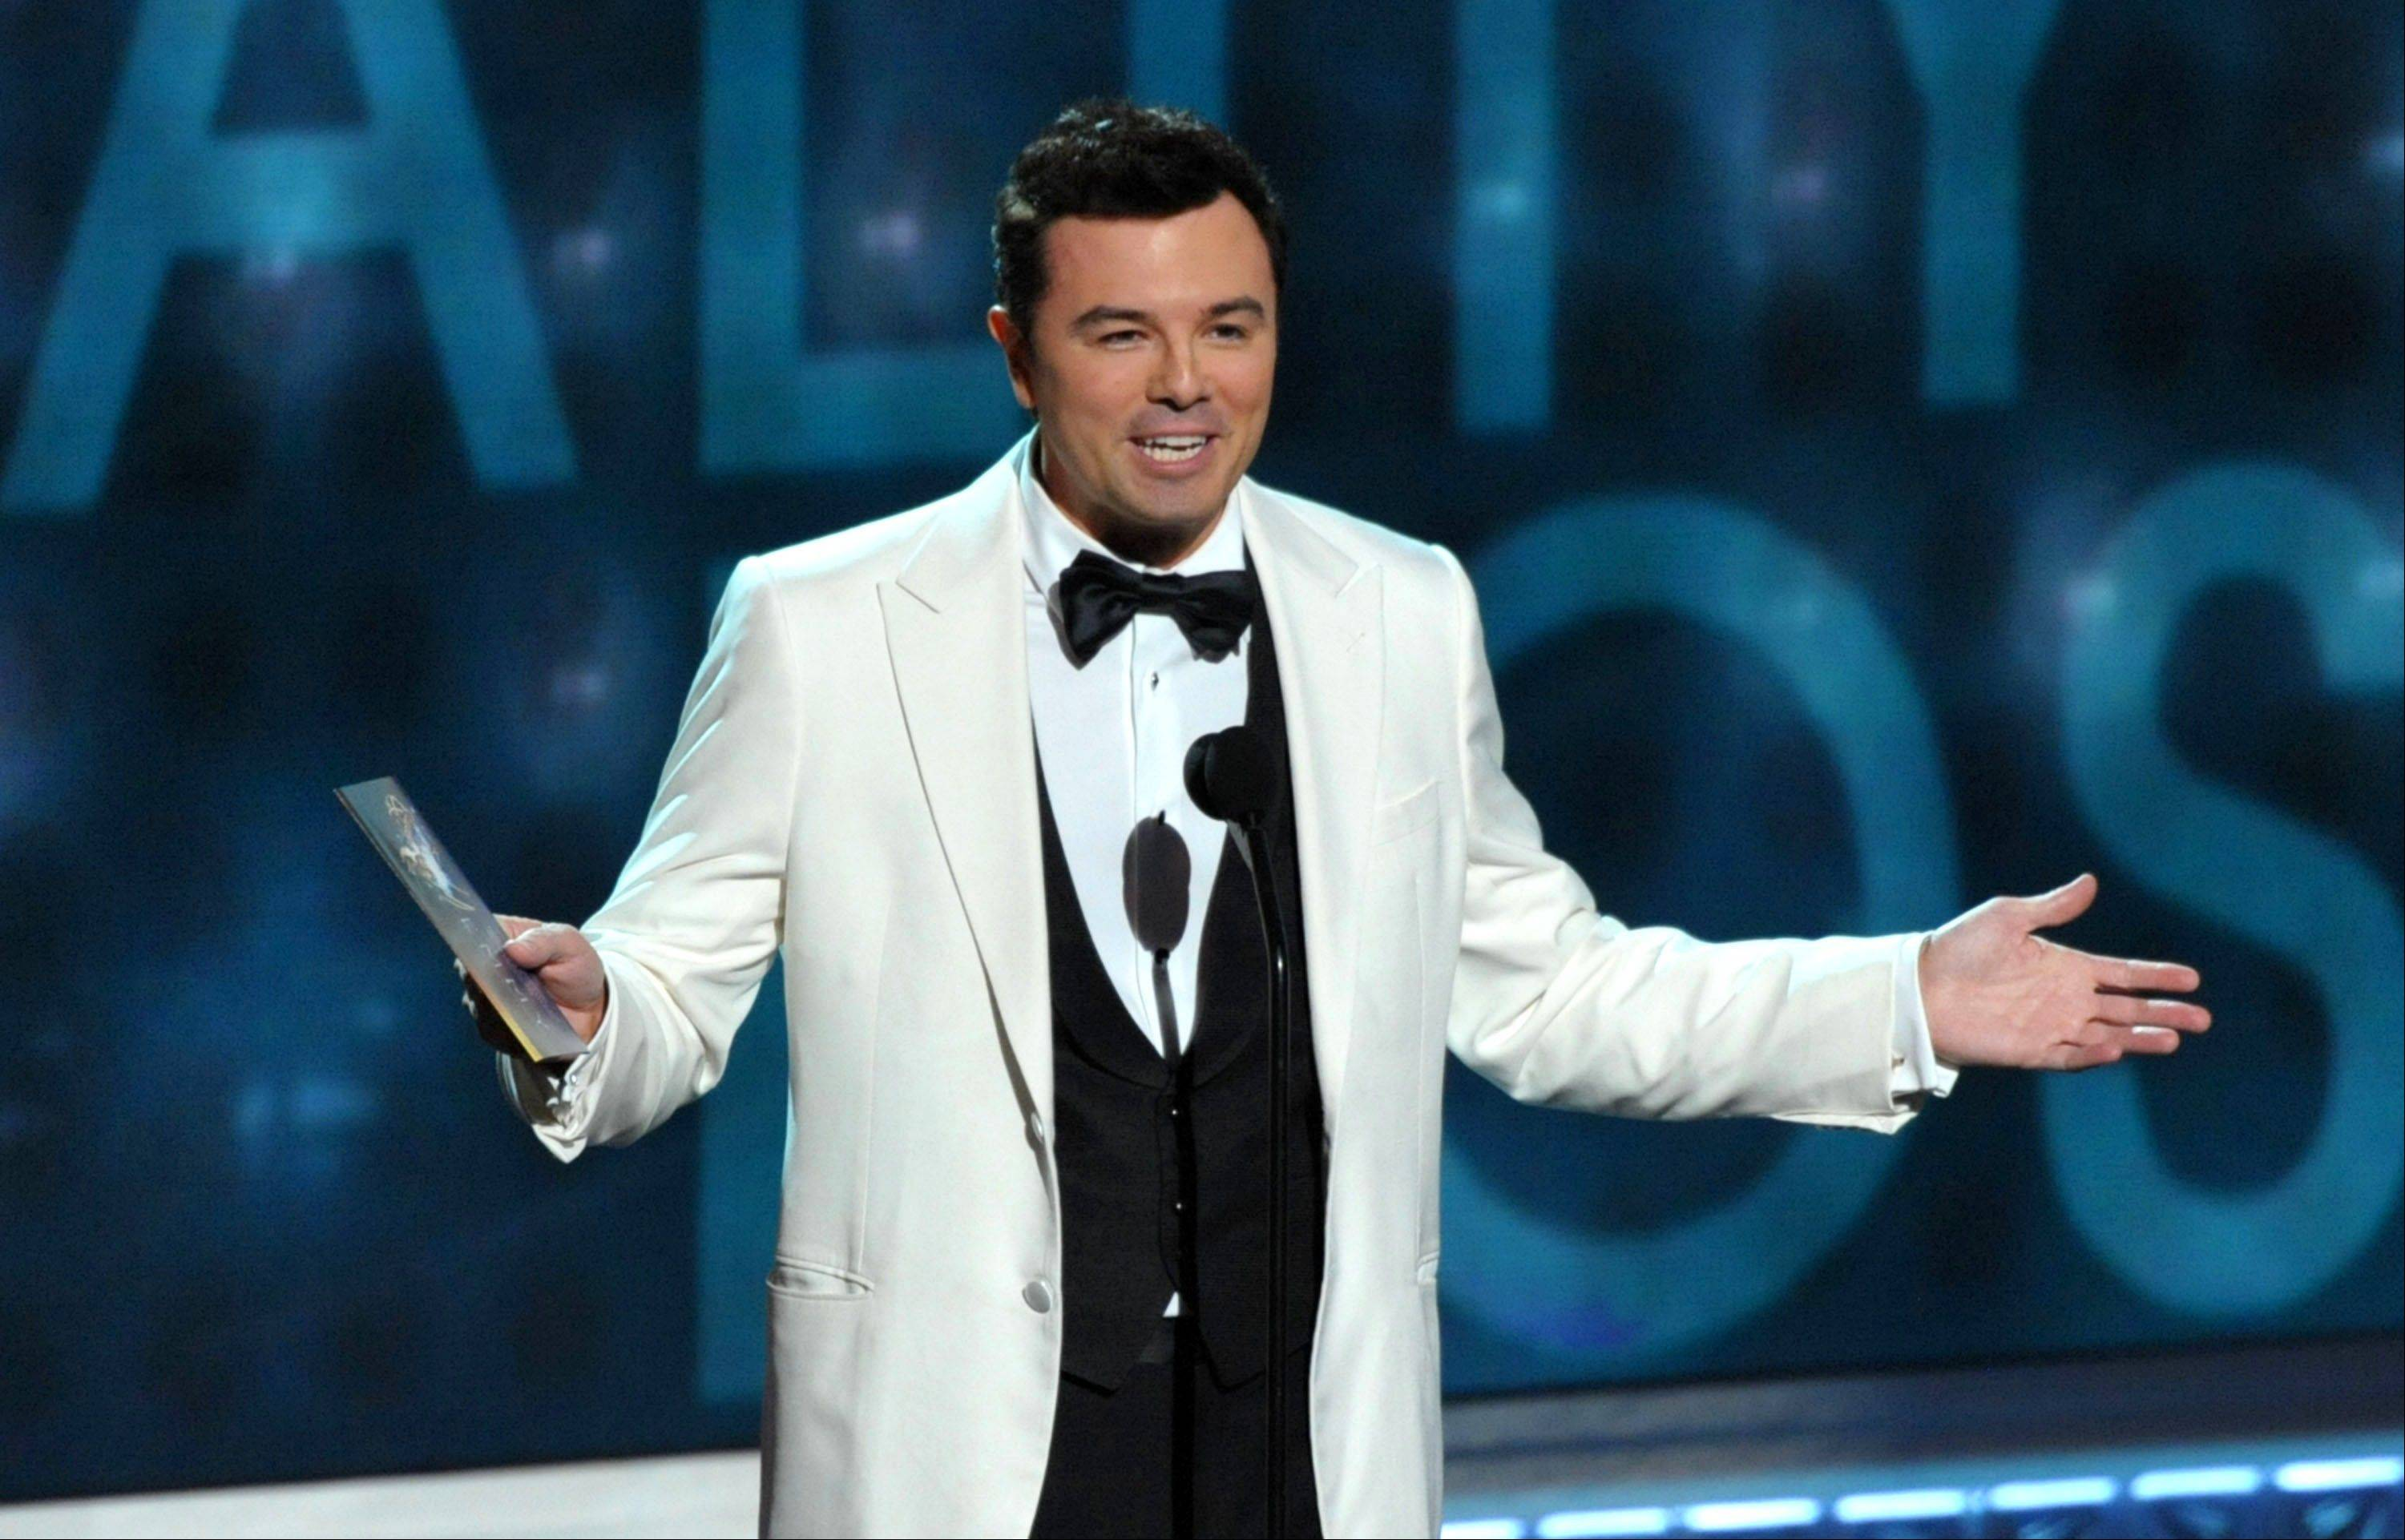 Seth MacFarlane, here presenting an award at the 64th Primetime Emmy Awards, will host the 85th Academy Awards on Sunday, Feb. 24, on ABC.